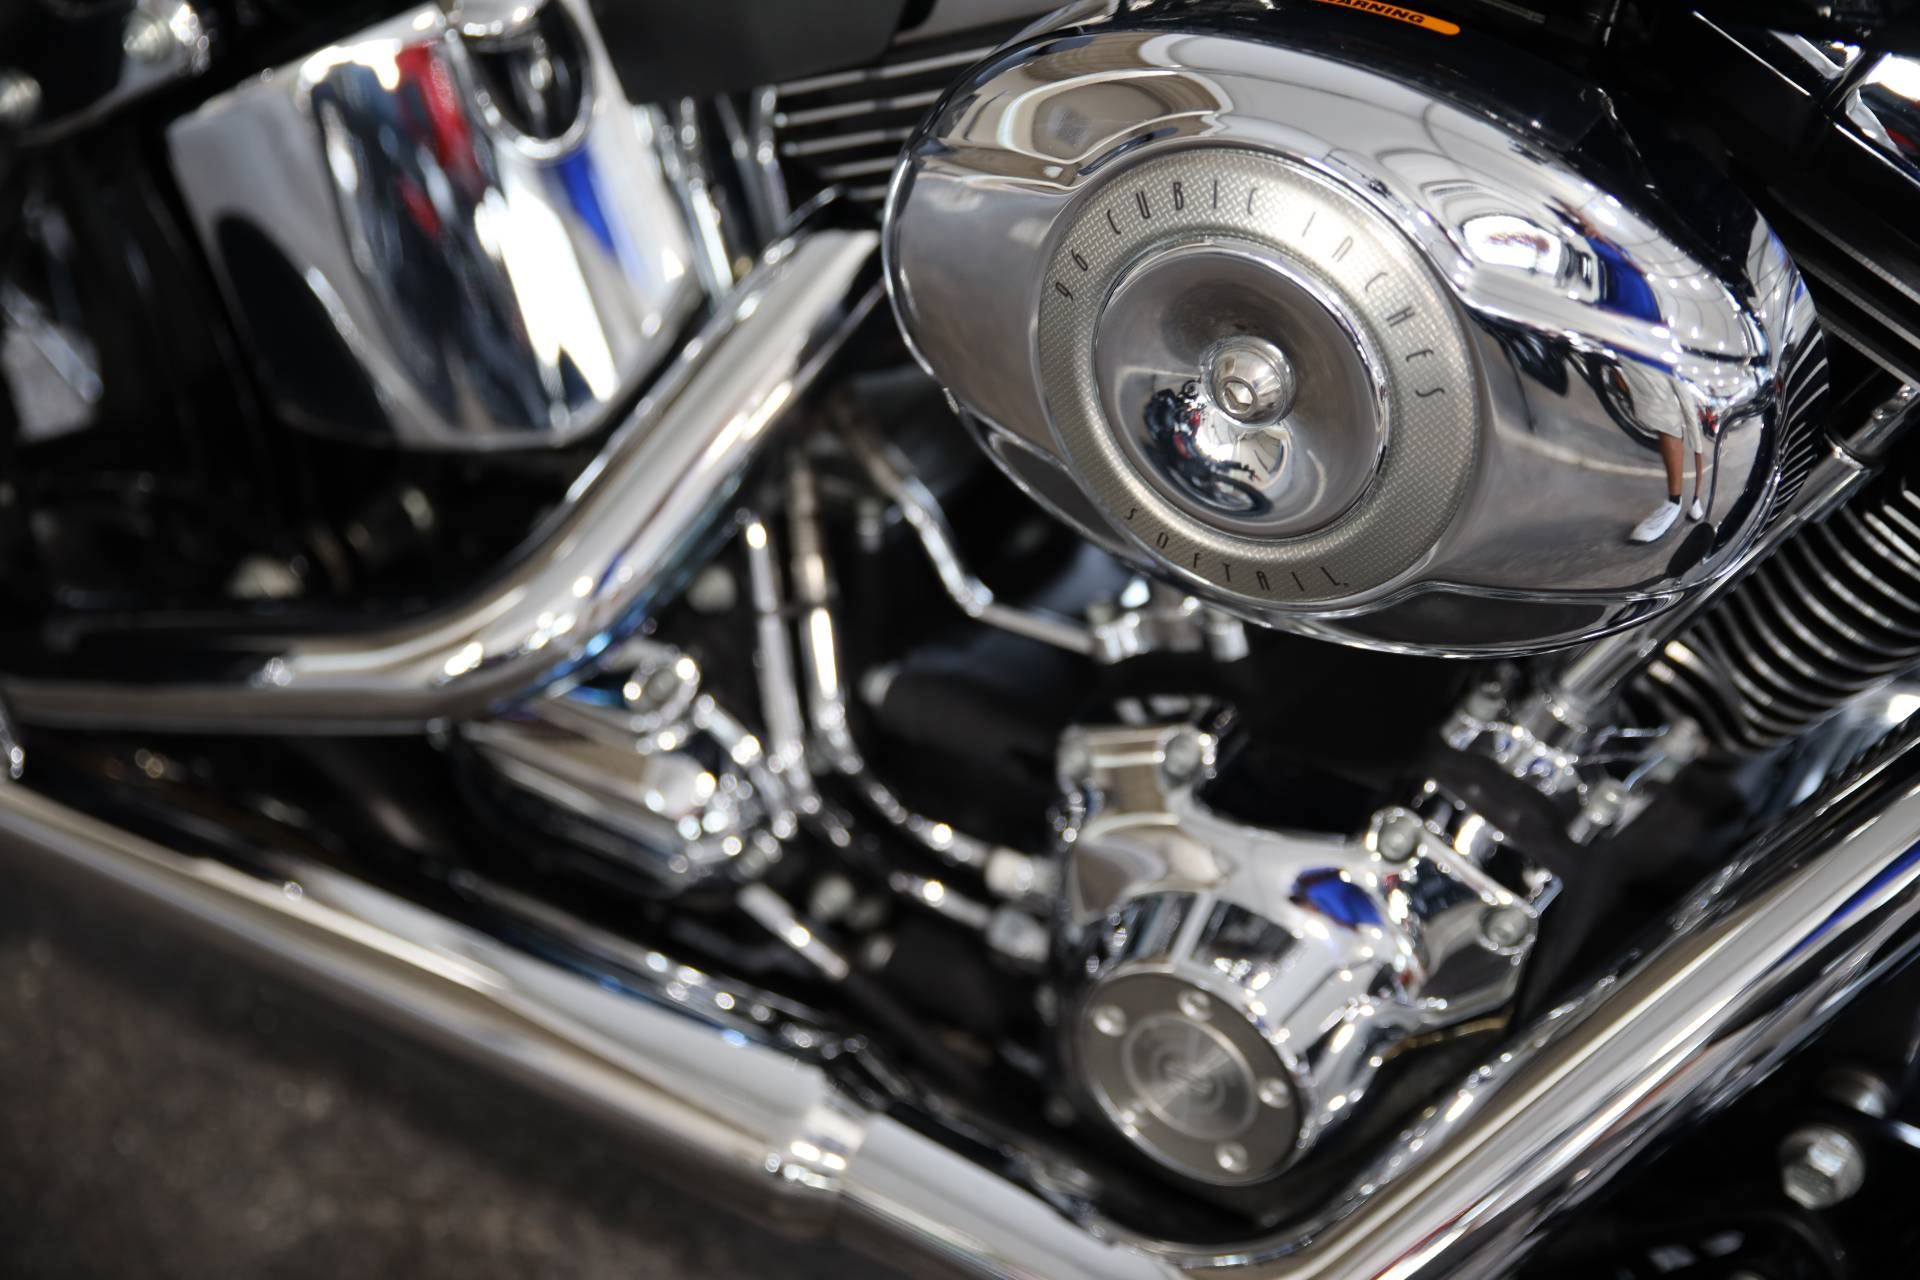 2009 Harley-Davidson FLSTC Heritage Softail® Classic in Clearwater, Florida - Photo 13